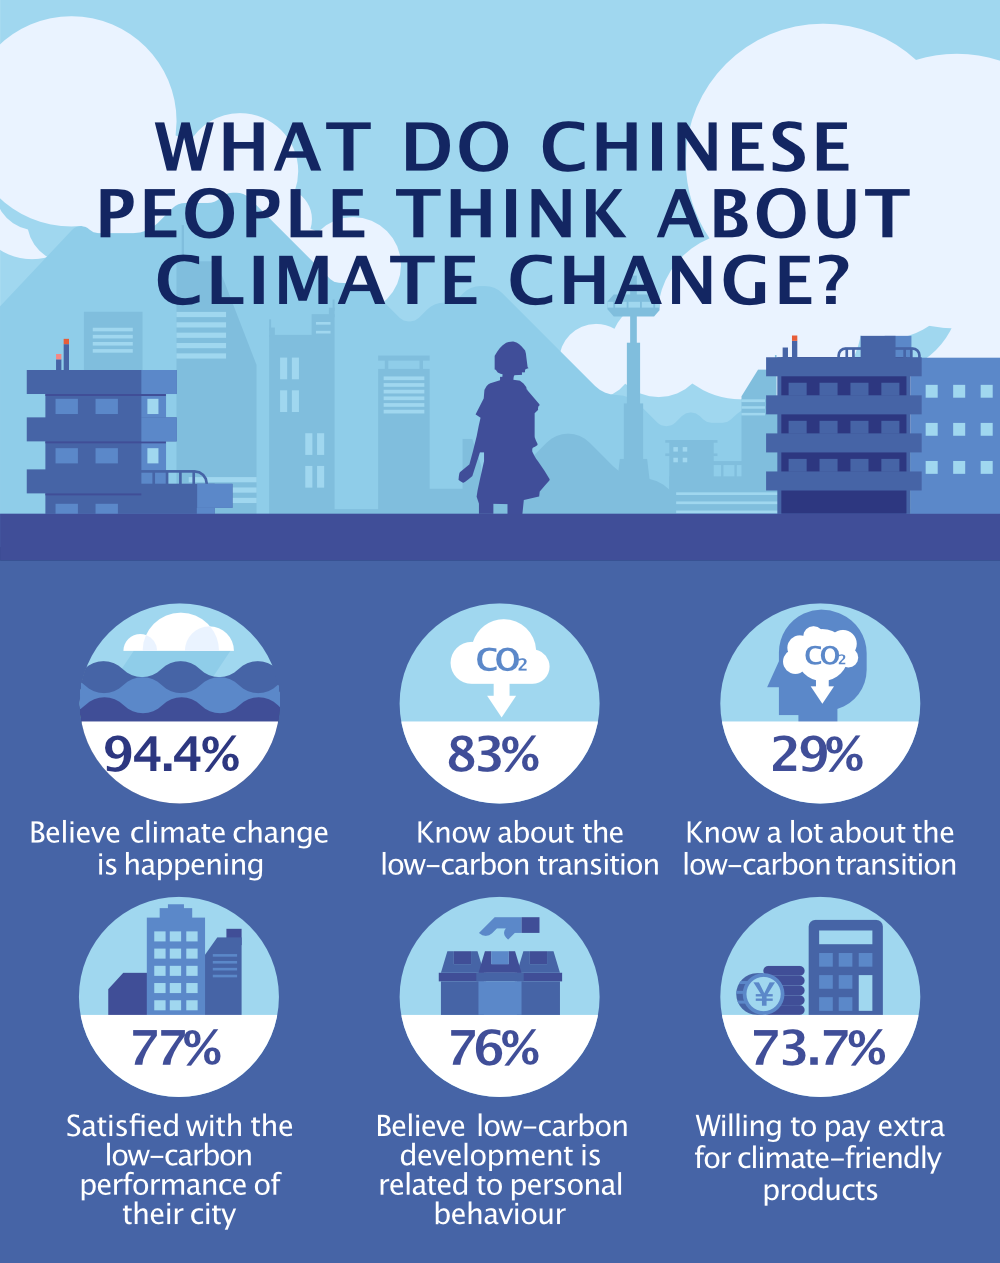 What do Chinese people think about climate change? Infographic. 94.4% believe climate change is happening, 83% know about the low-carbon transition, 29% know a lot about the low-carbon transition, 73.7% willing to pay extra for climate-friendly products.